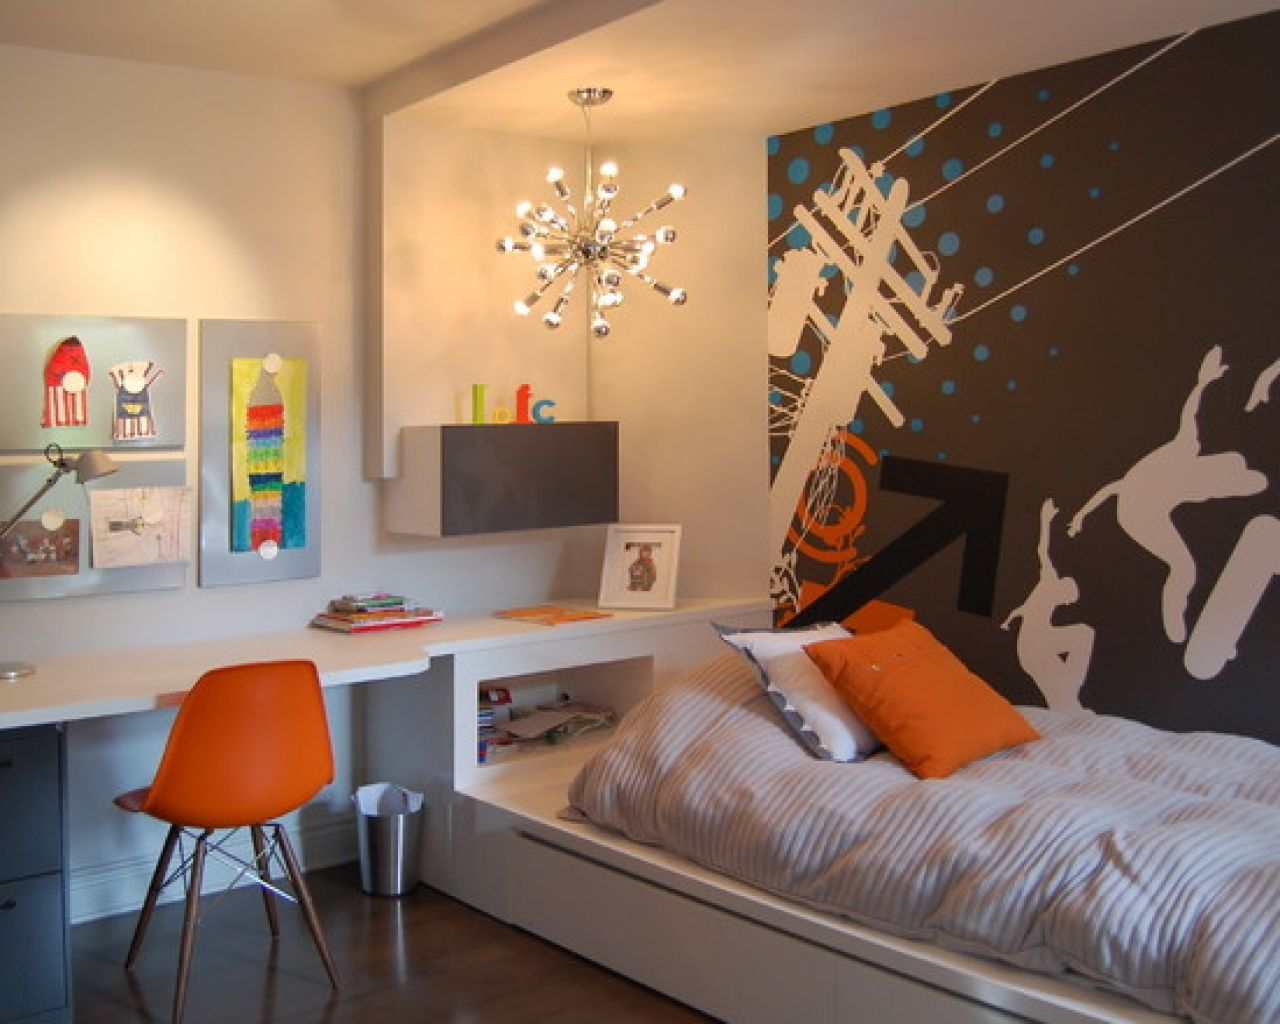 Risultati immagini per childrens small bedroom ideas